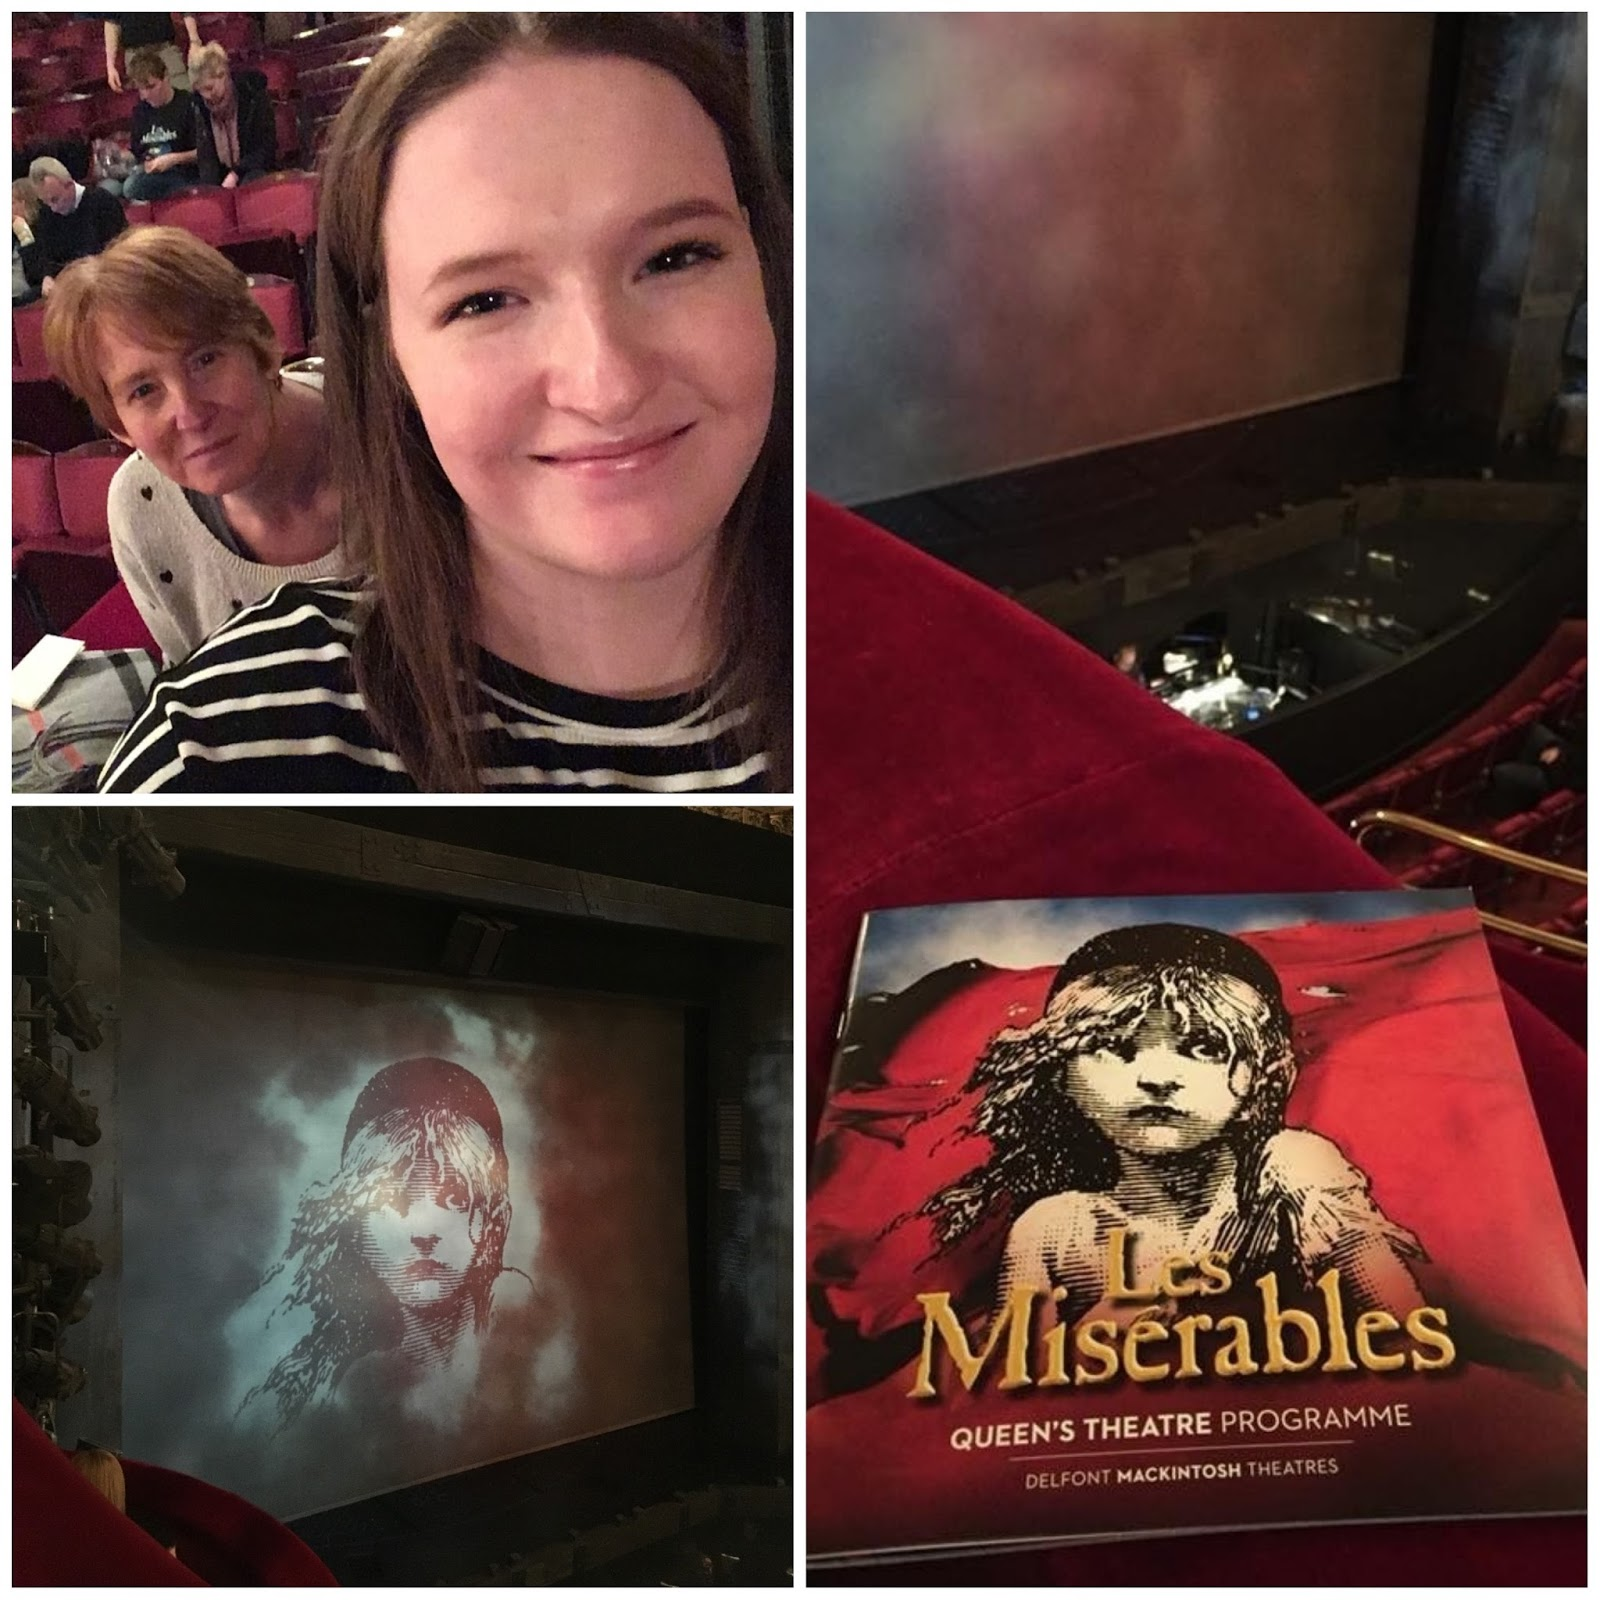 This is a collage of photos. Image one shows Shona, smiling, with her Mum seen smiling behind her, the photo is a selfie. The other 2 photos show the interior of a theatre, with a programme for Les Miserables in one of the photos.